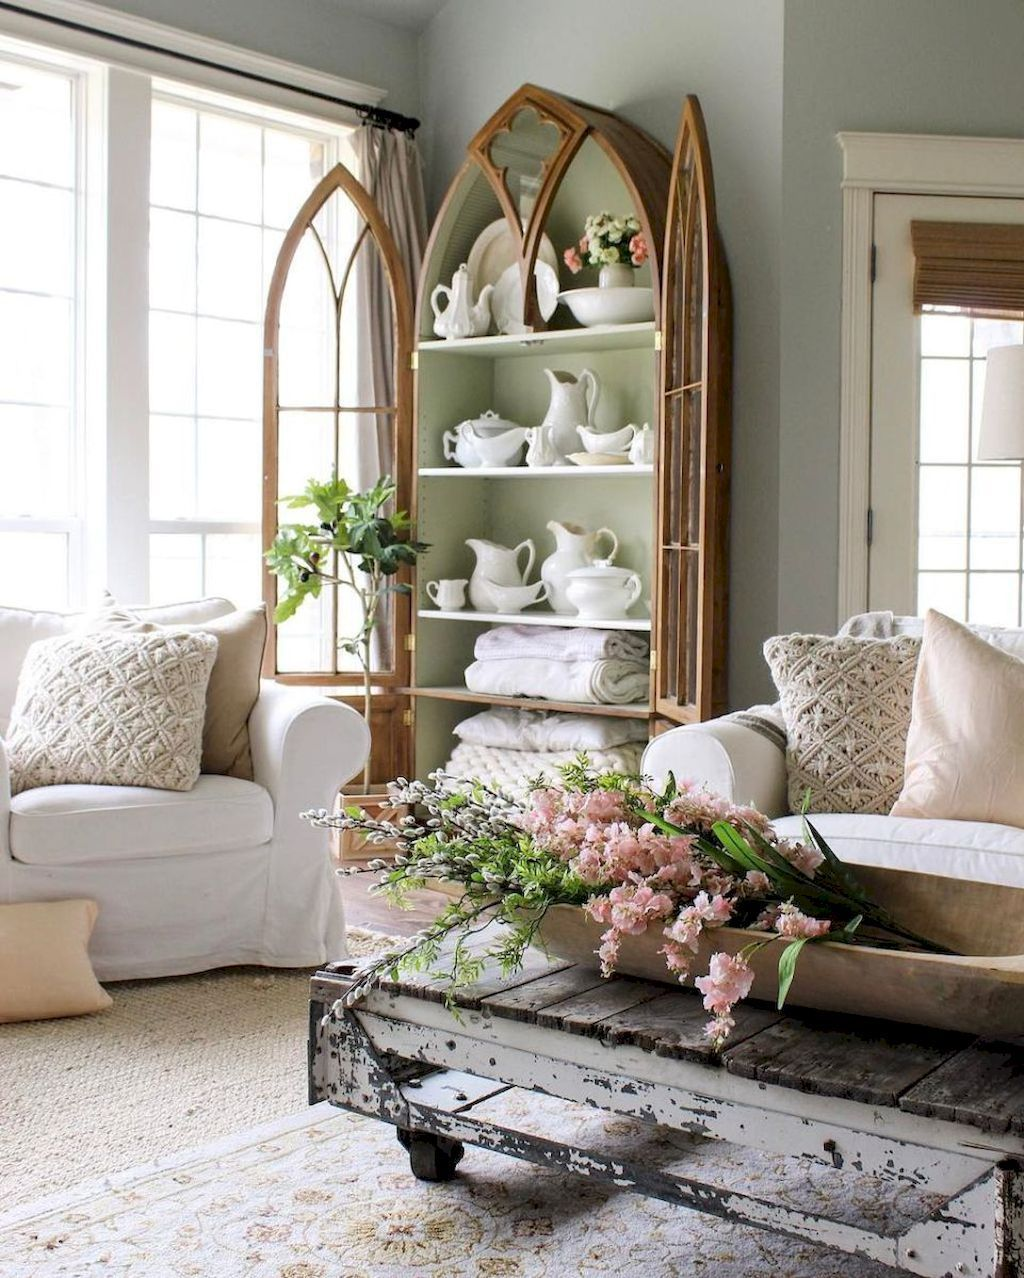 image horne zachary rooms livings living of room small homes and french furniture country